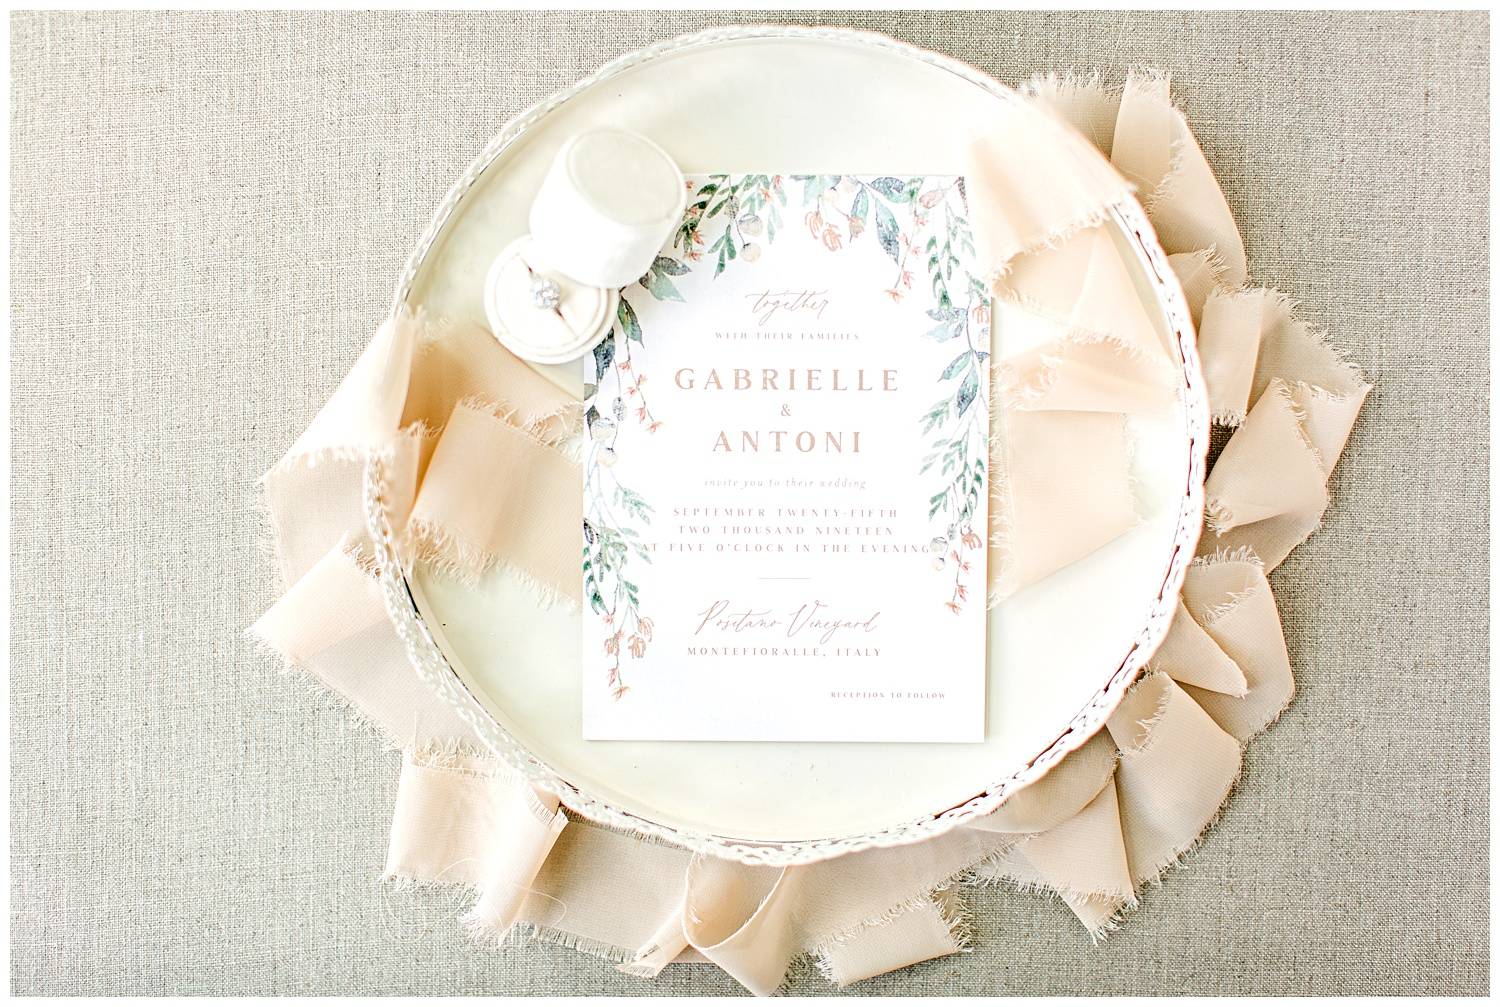 Peach, green and dusty blue watercolor floral wedding invitation from Elli beautifully styled on a cream decorative tray with a cream ring box and peach frayed edge ribbon.